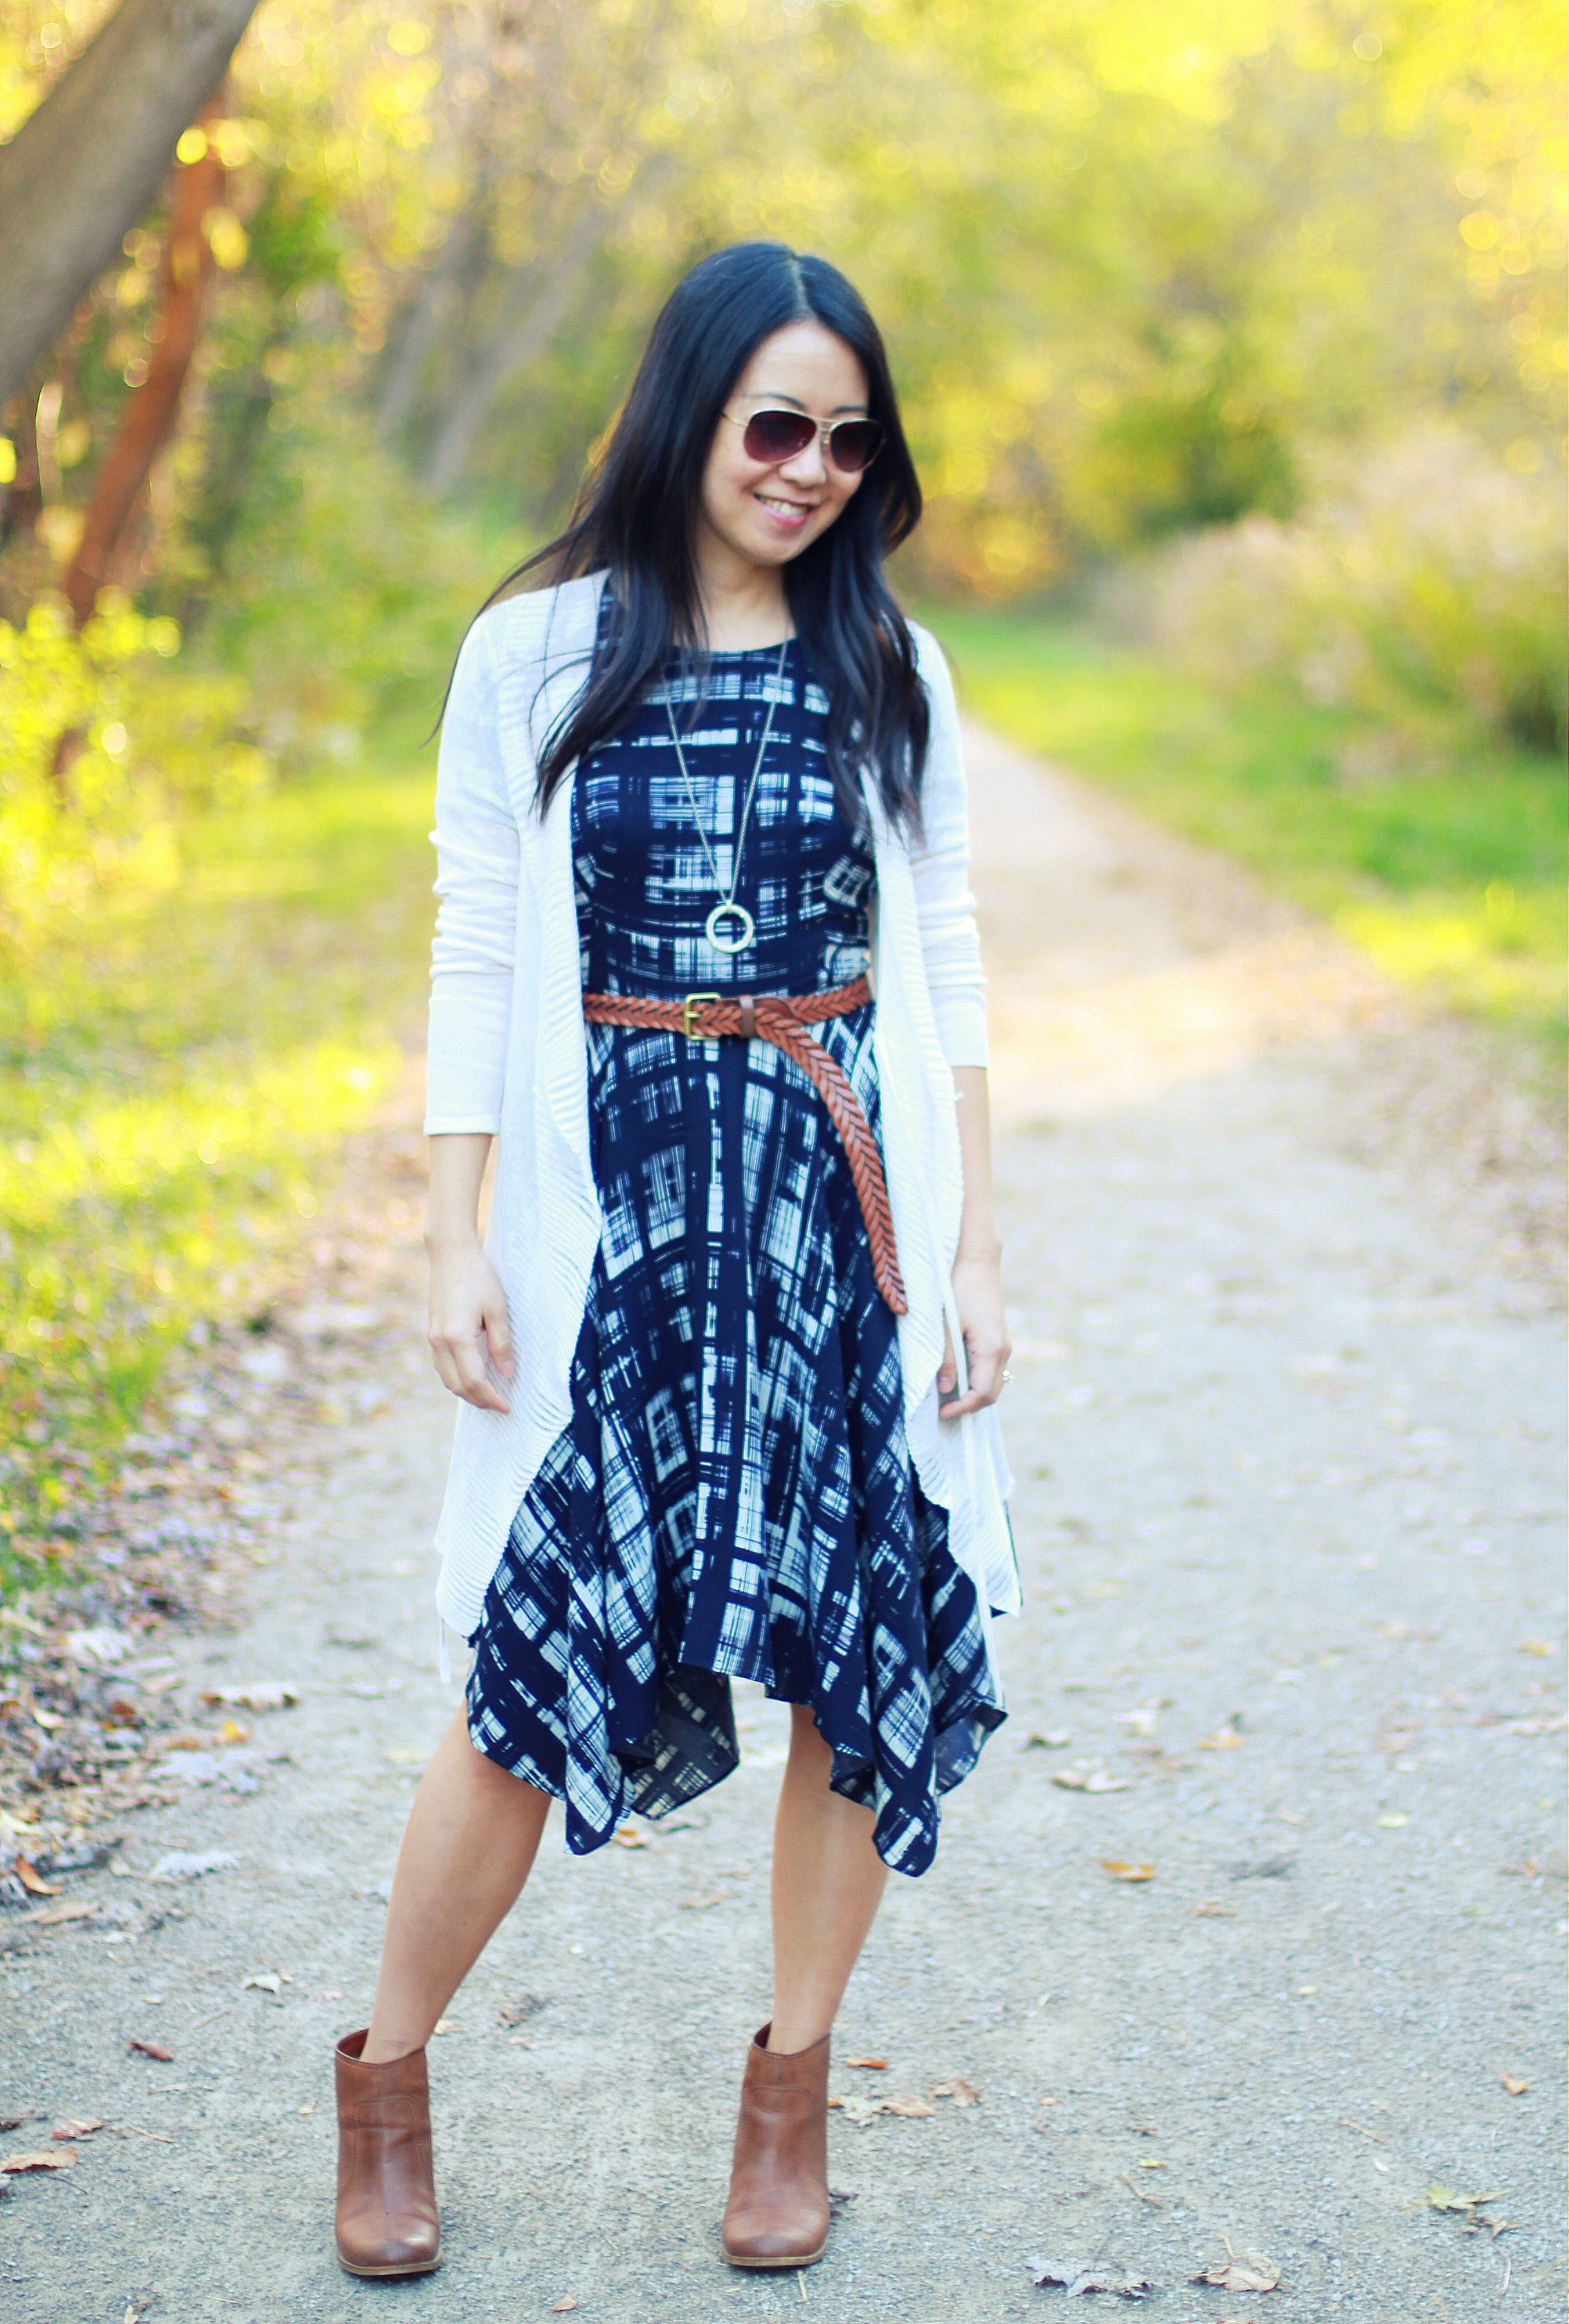 d9a0a2d08145 From Country Chic to City Sleek: Painted Plaid Dress - My Rose ...